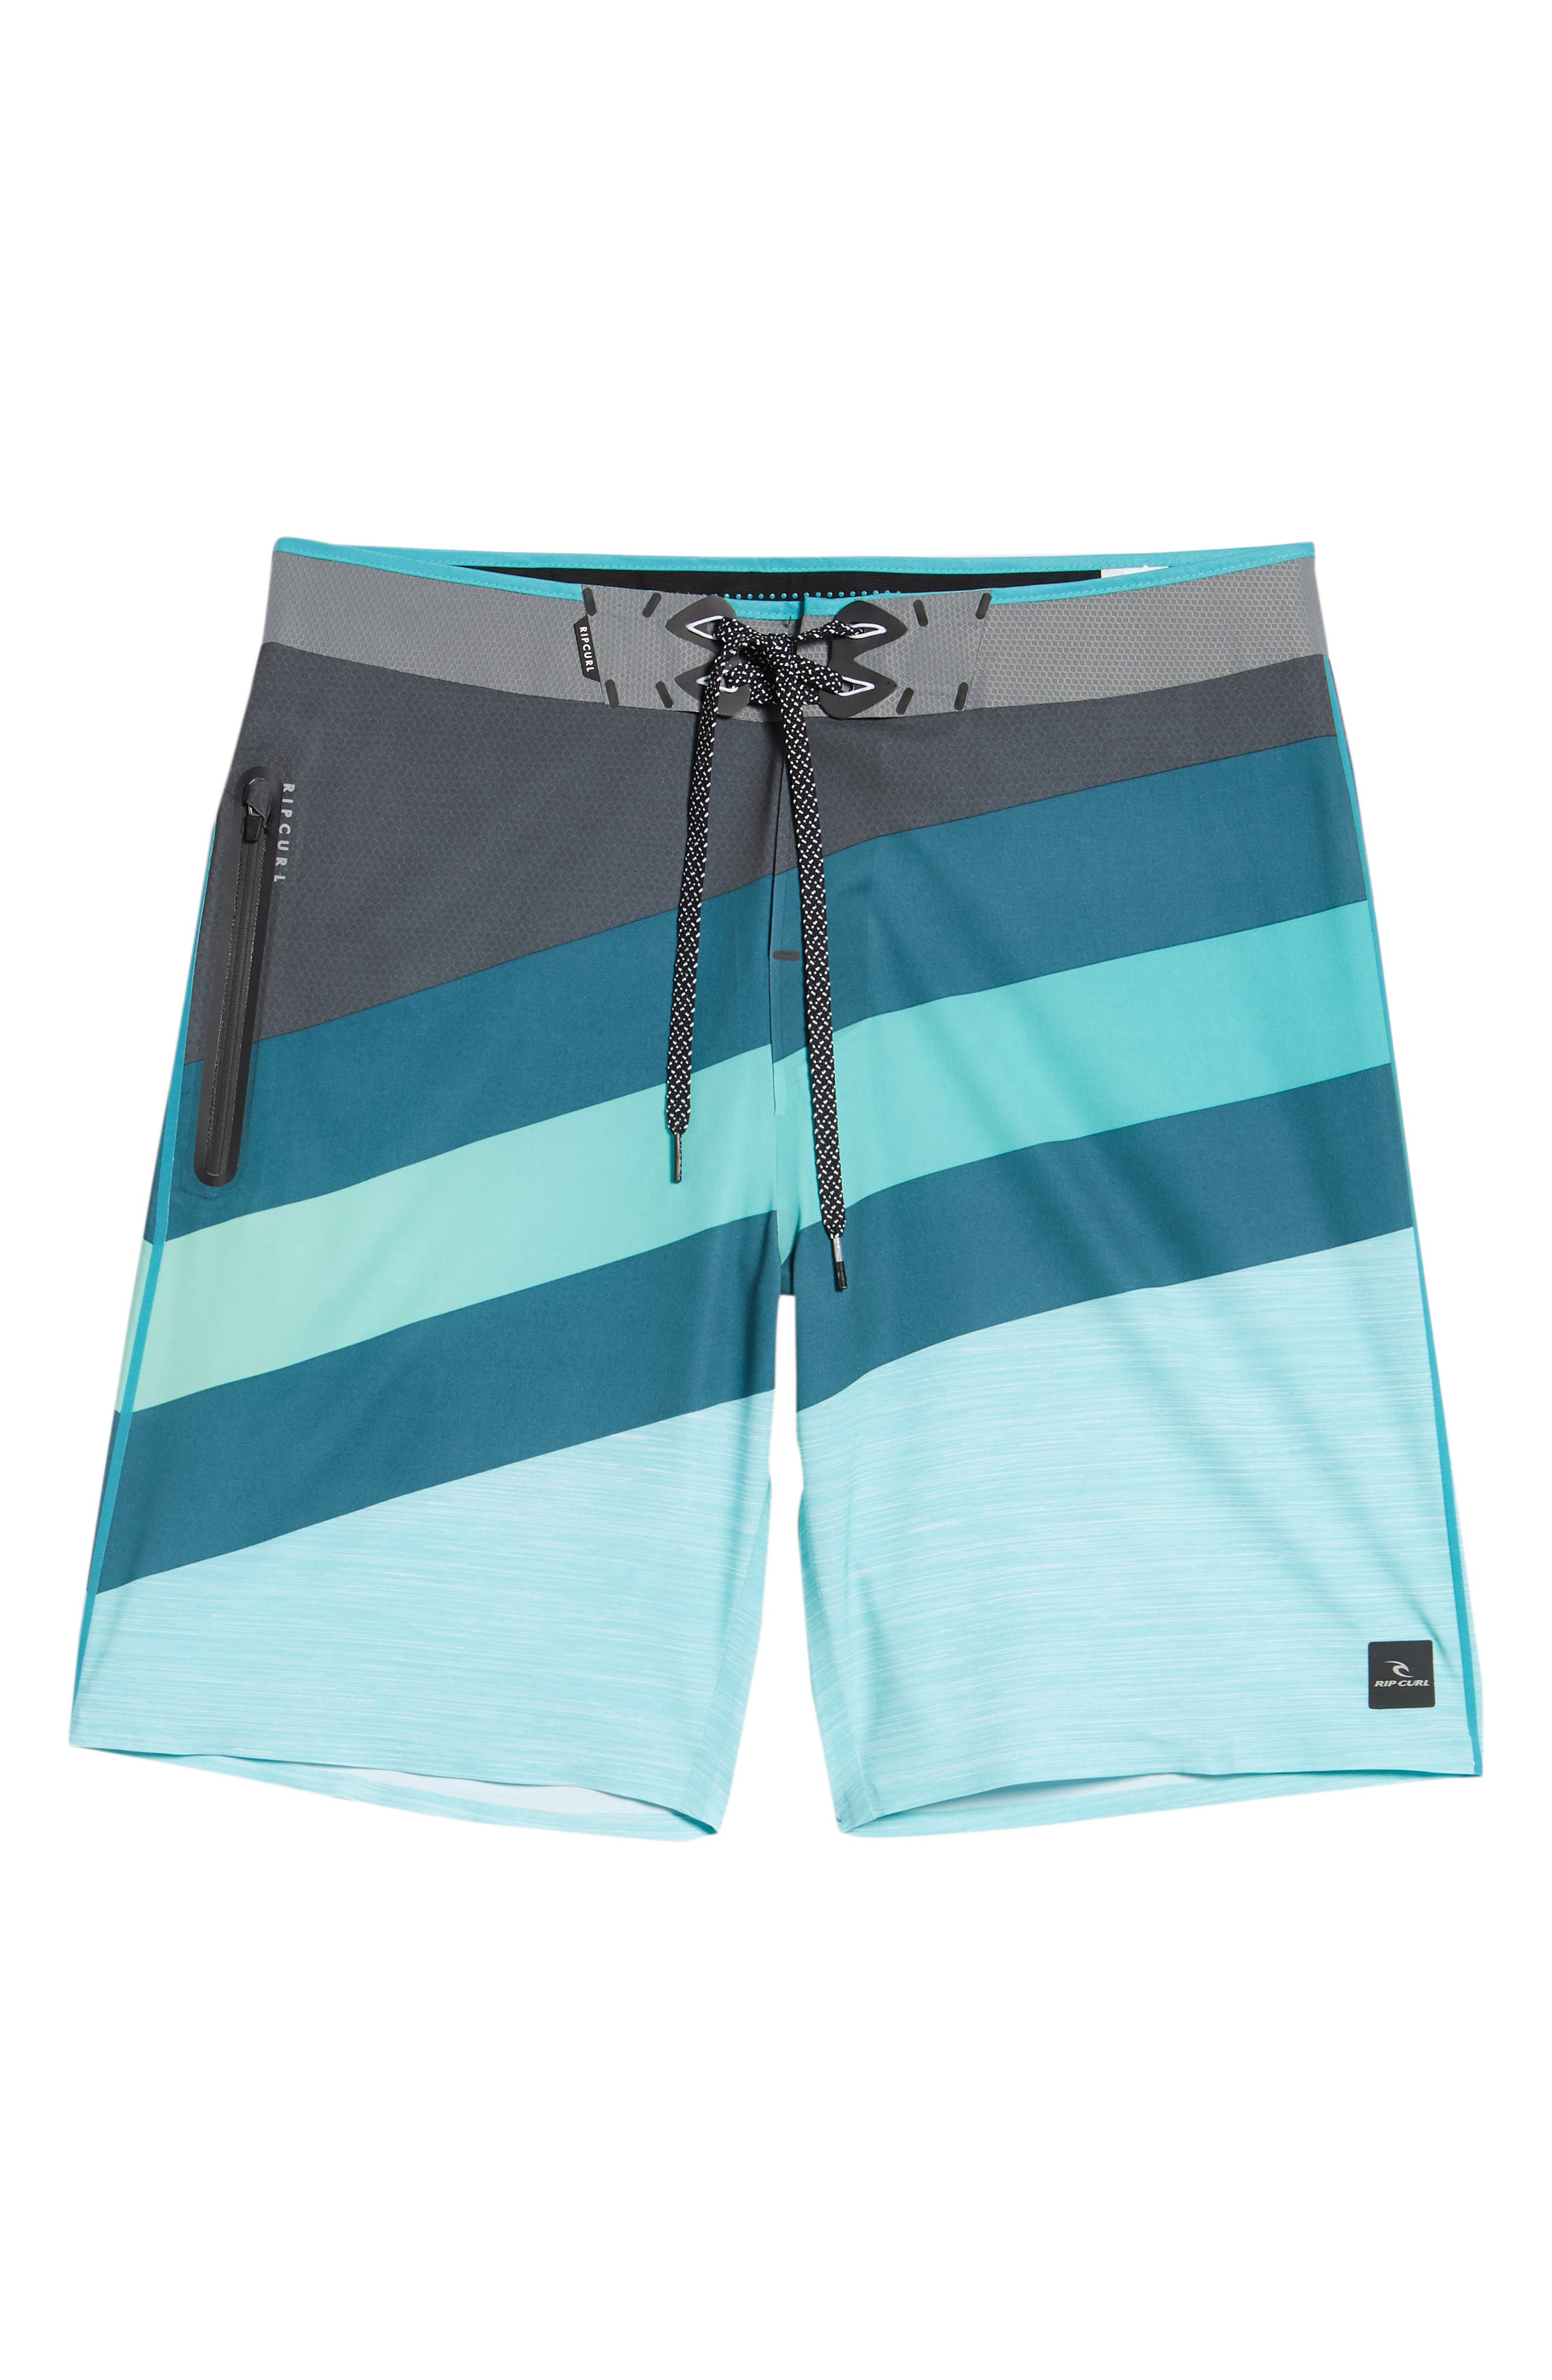 Mirage React Ultimate Board Short,                             Alternate thumbnail 6, color,                             Teal